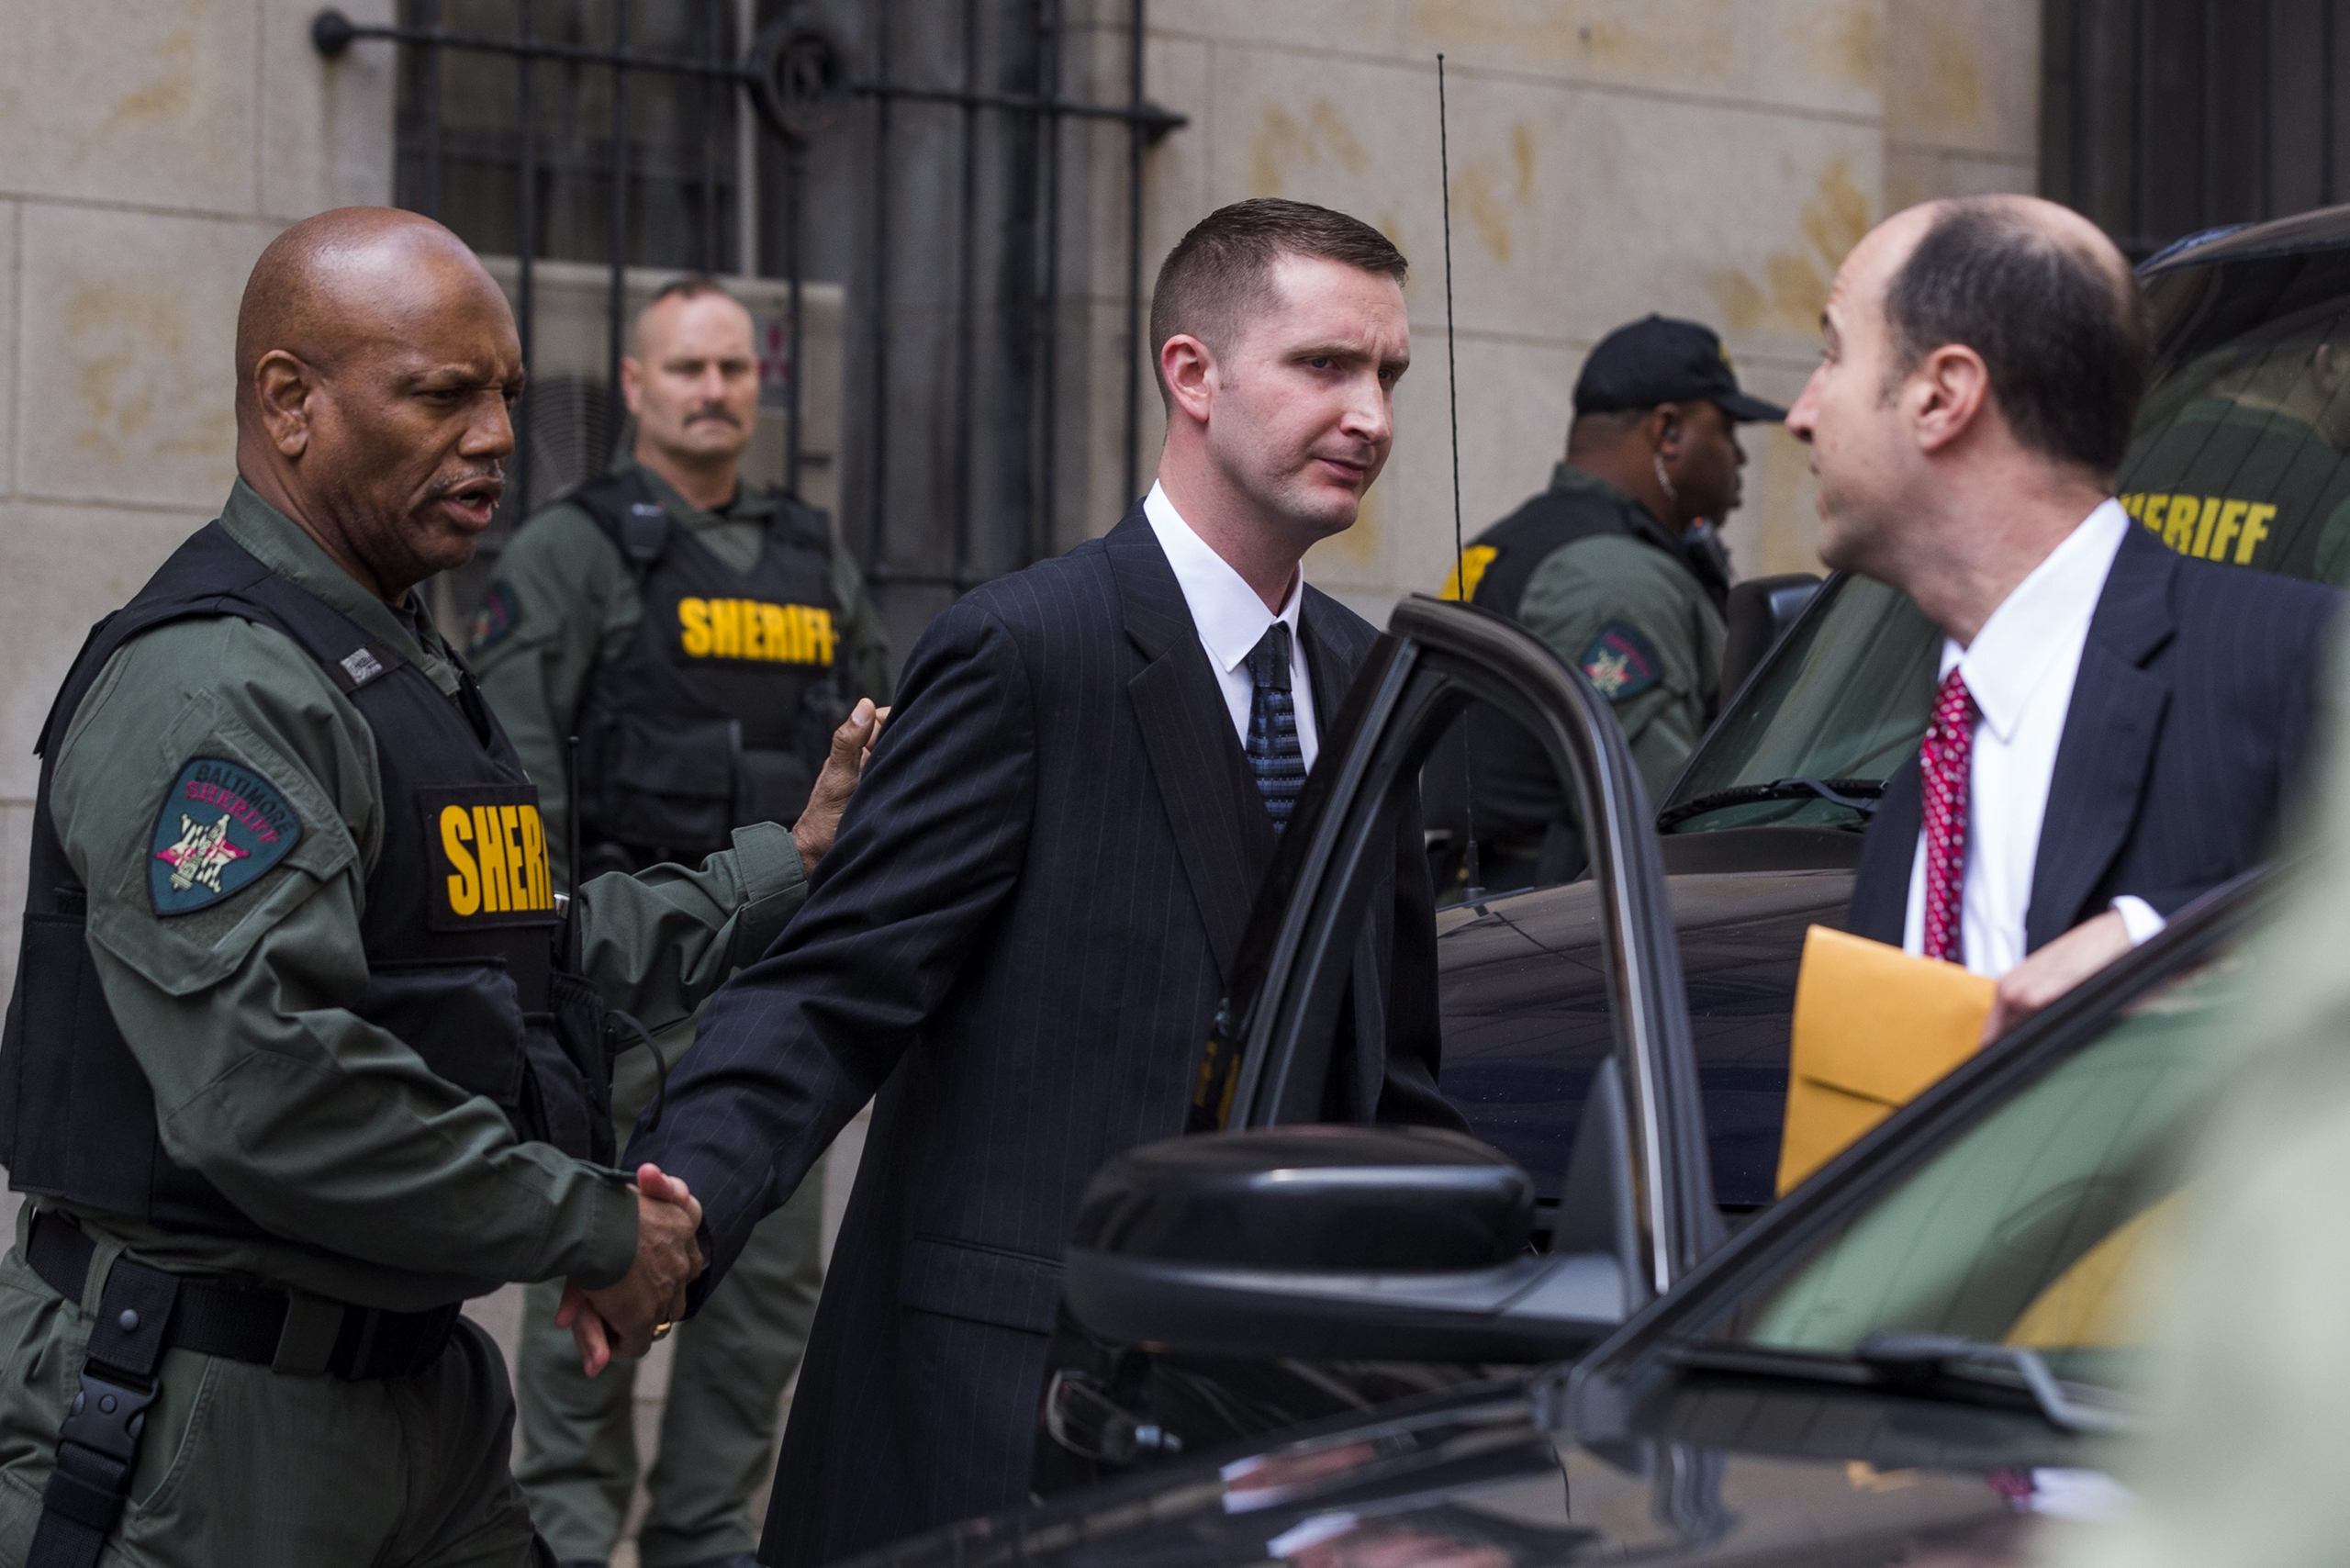 Baltimore police officer Edward Nero, along with his attorney Marc Zayon, leaves the courthouse after being acquitted of all charges in the death of Freddie Gray in Baltimore, MD, May 23, 2016.